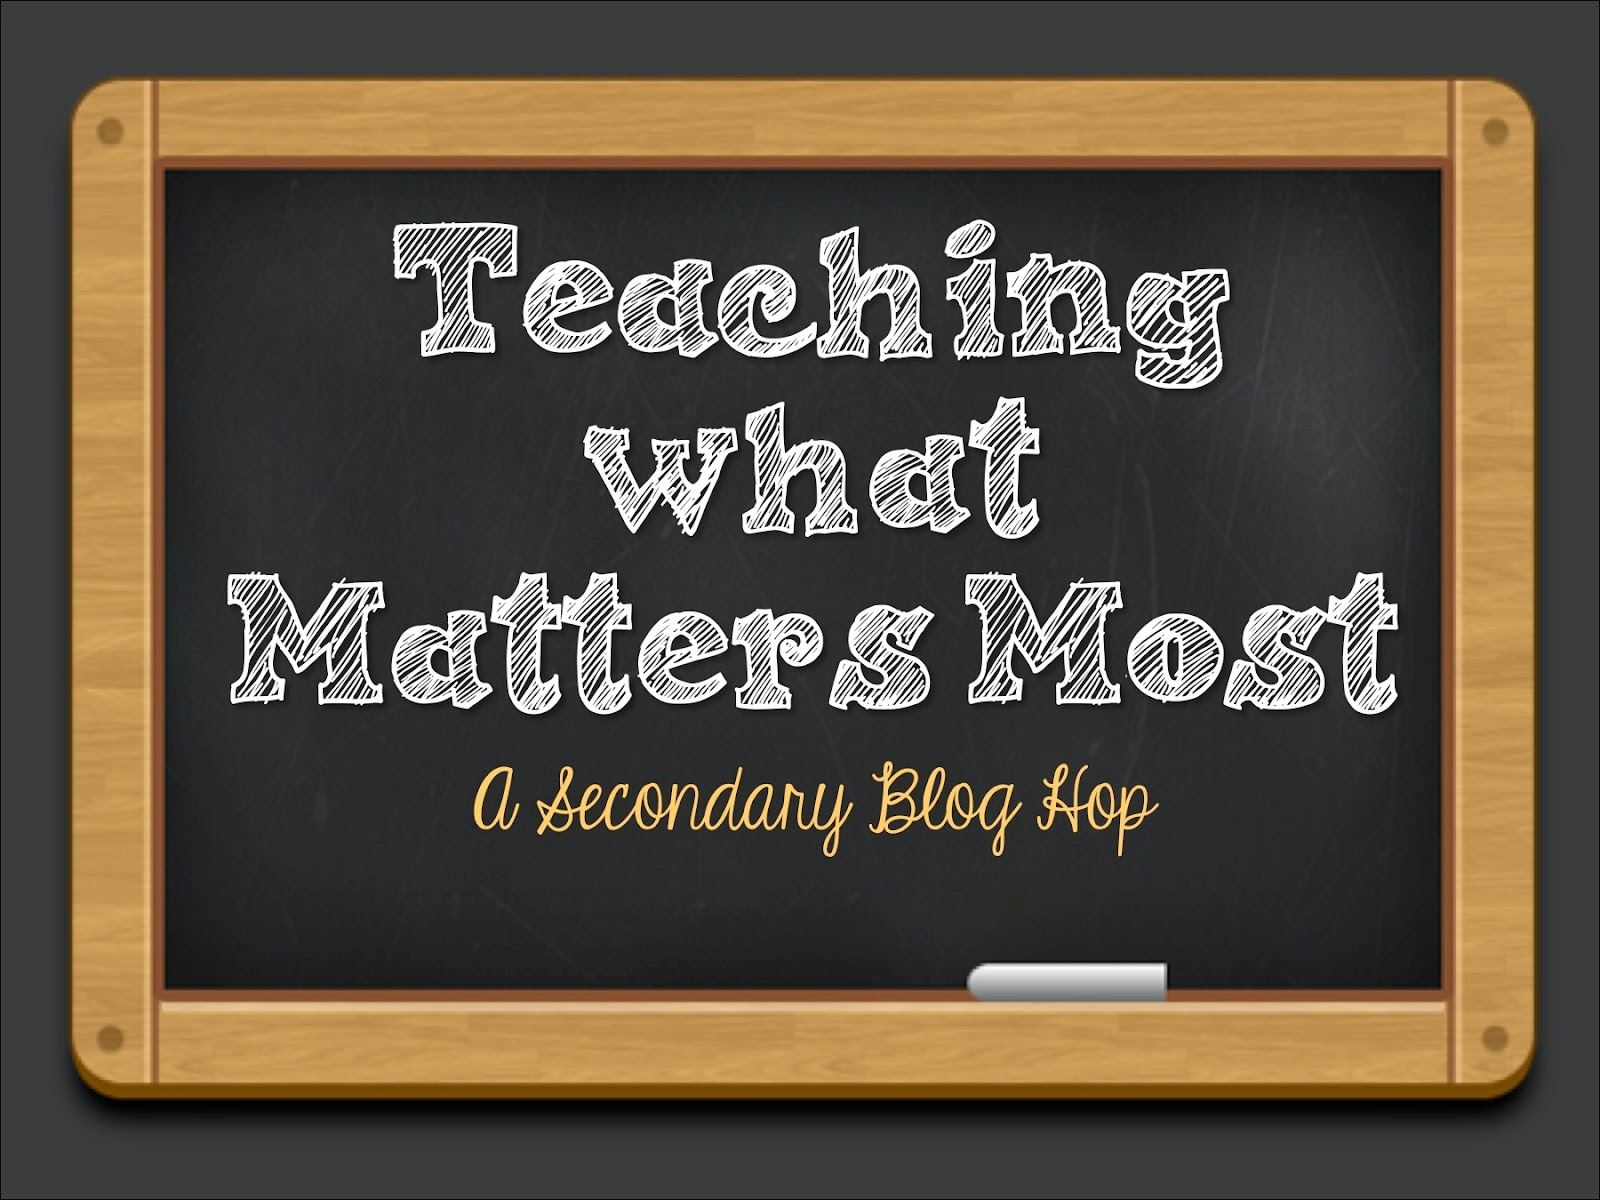 When it comes down to it, a lot of instructional time is lost to standardized testing, snow days, assemblies, and all sorts of other events. How do we fit in all the curriculum? How do we know what really matters? I'm sharing the three things that really matter to me and my students' instruction in this post, and I hope those three ideas inspire you, too.